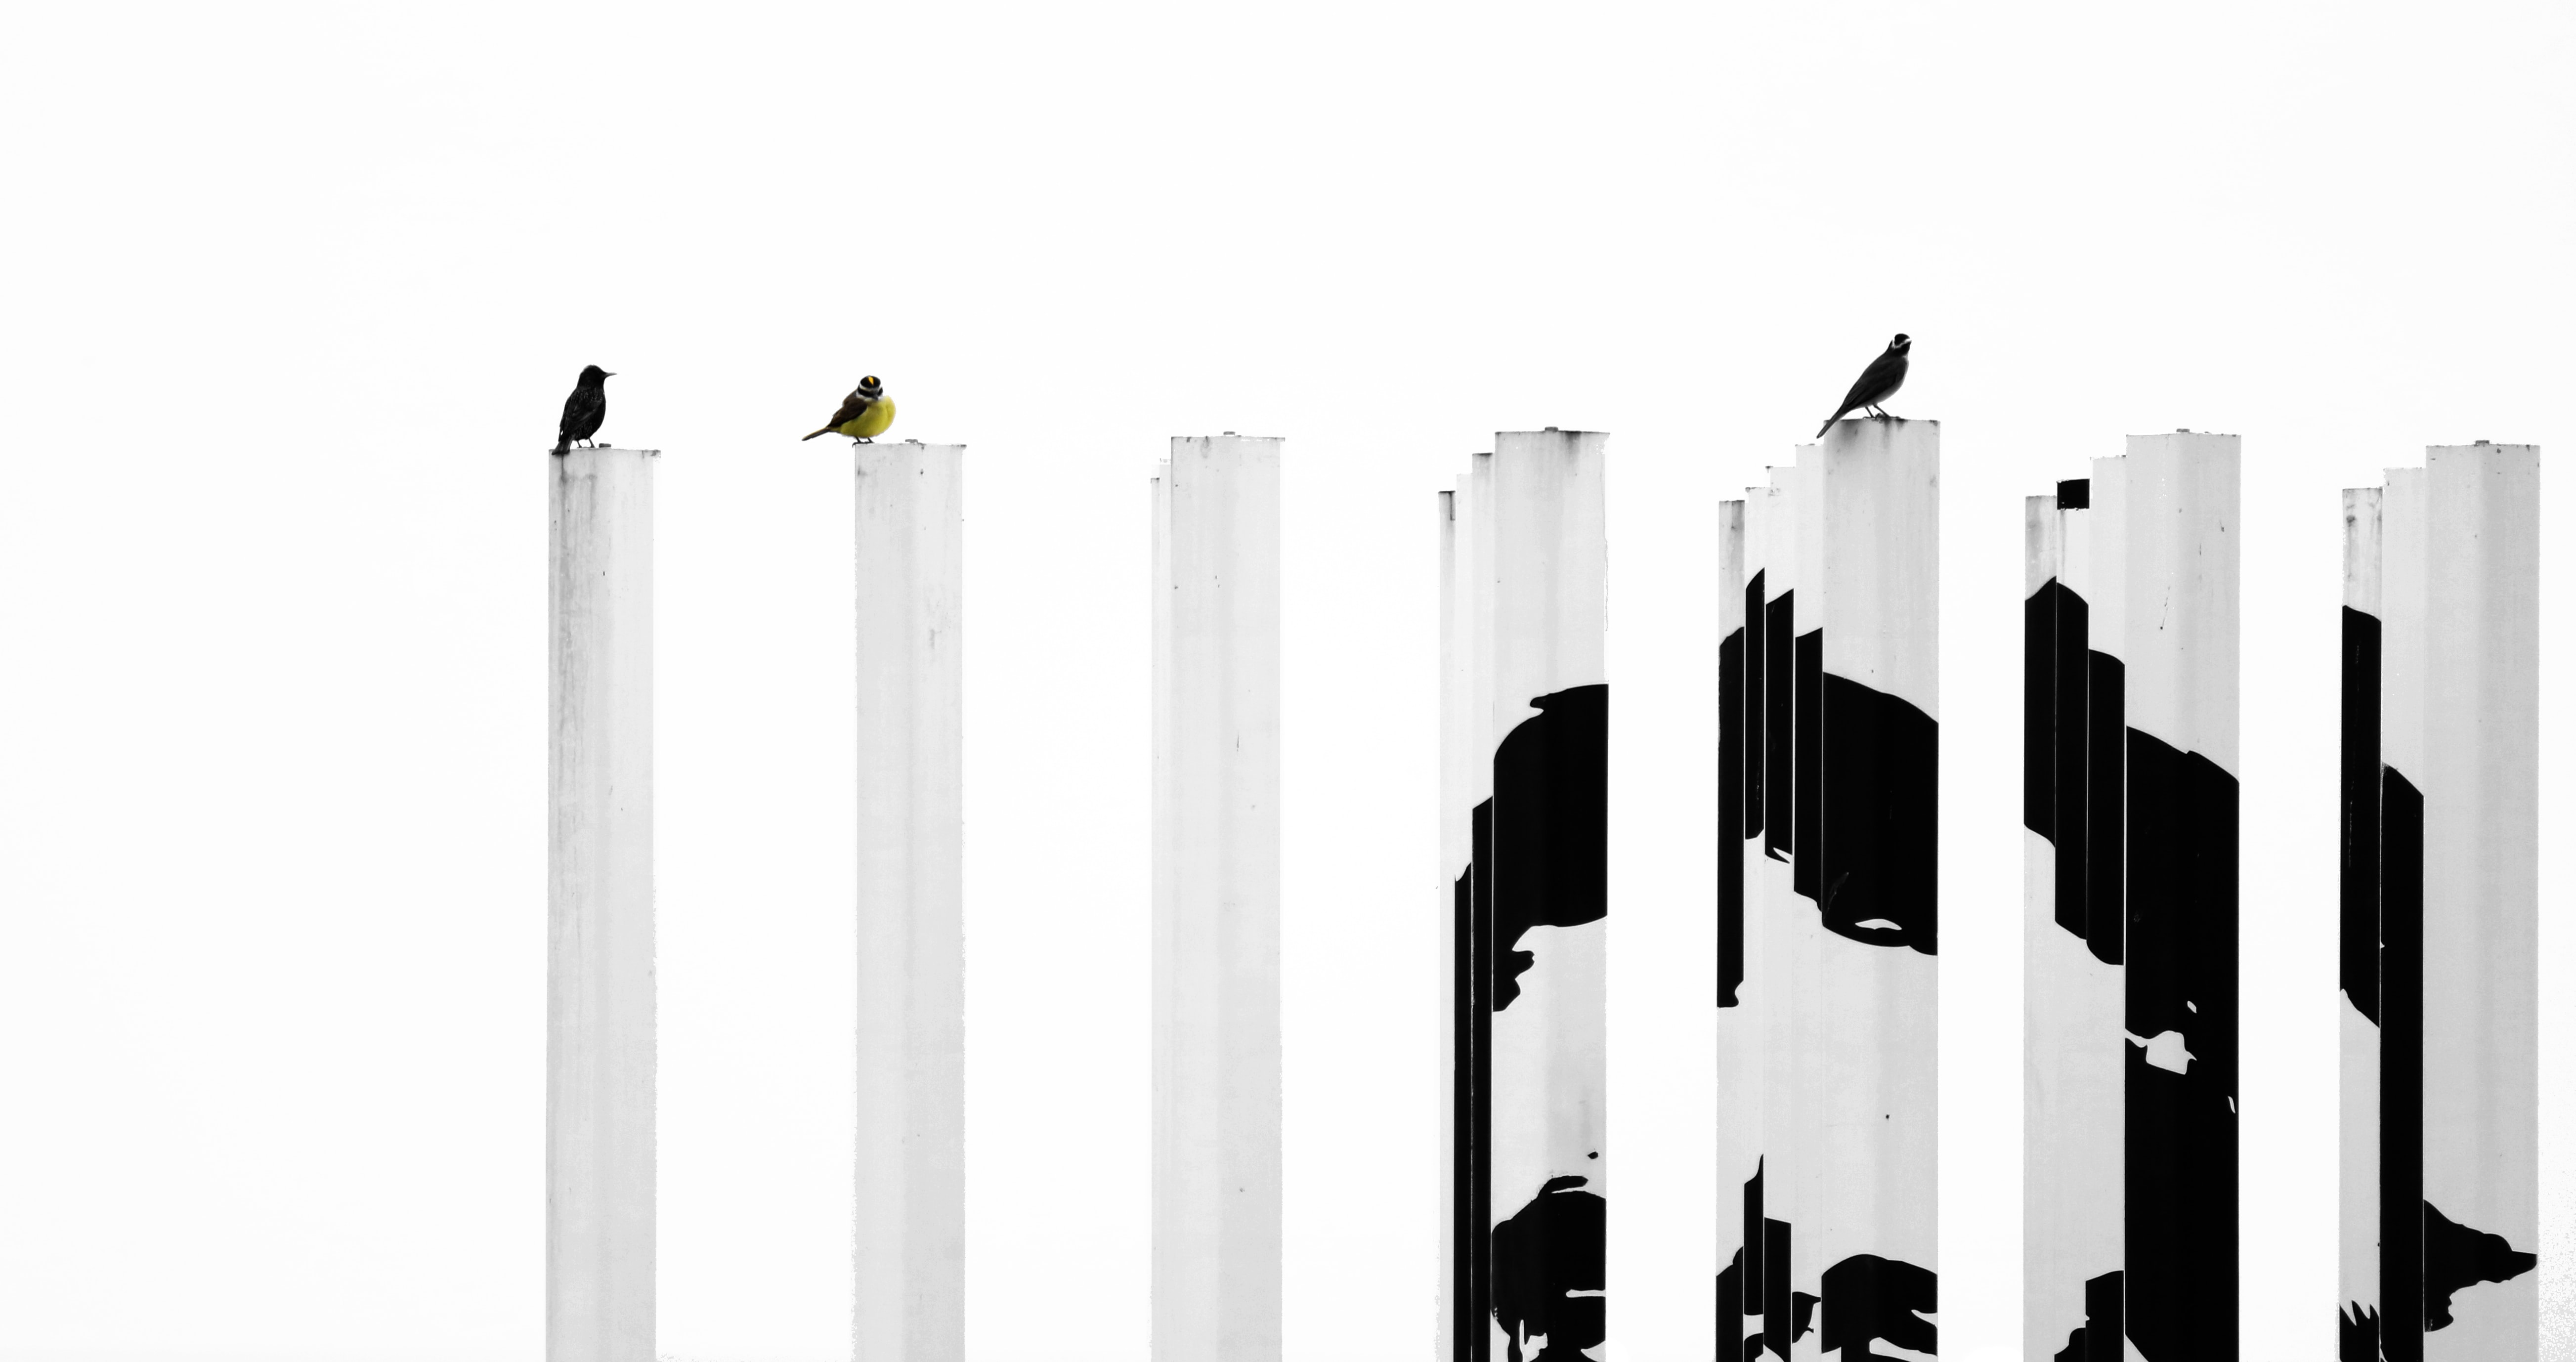 blacka nd white painted posts with three birds perching